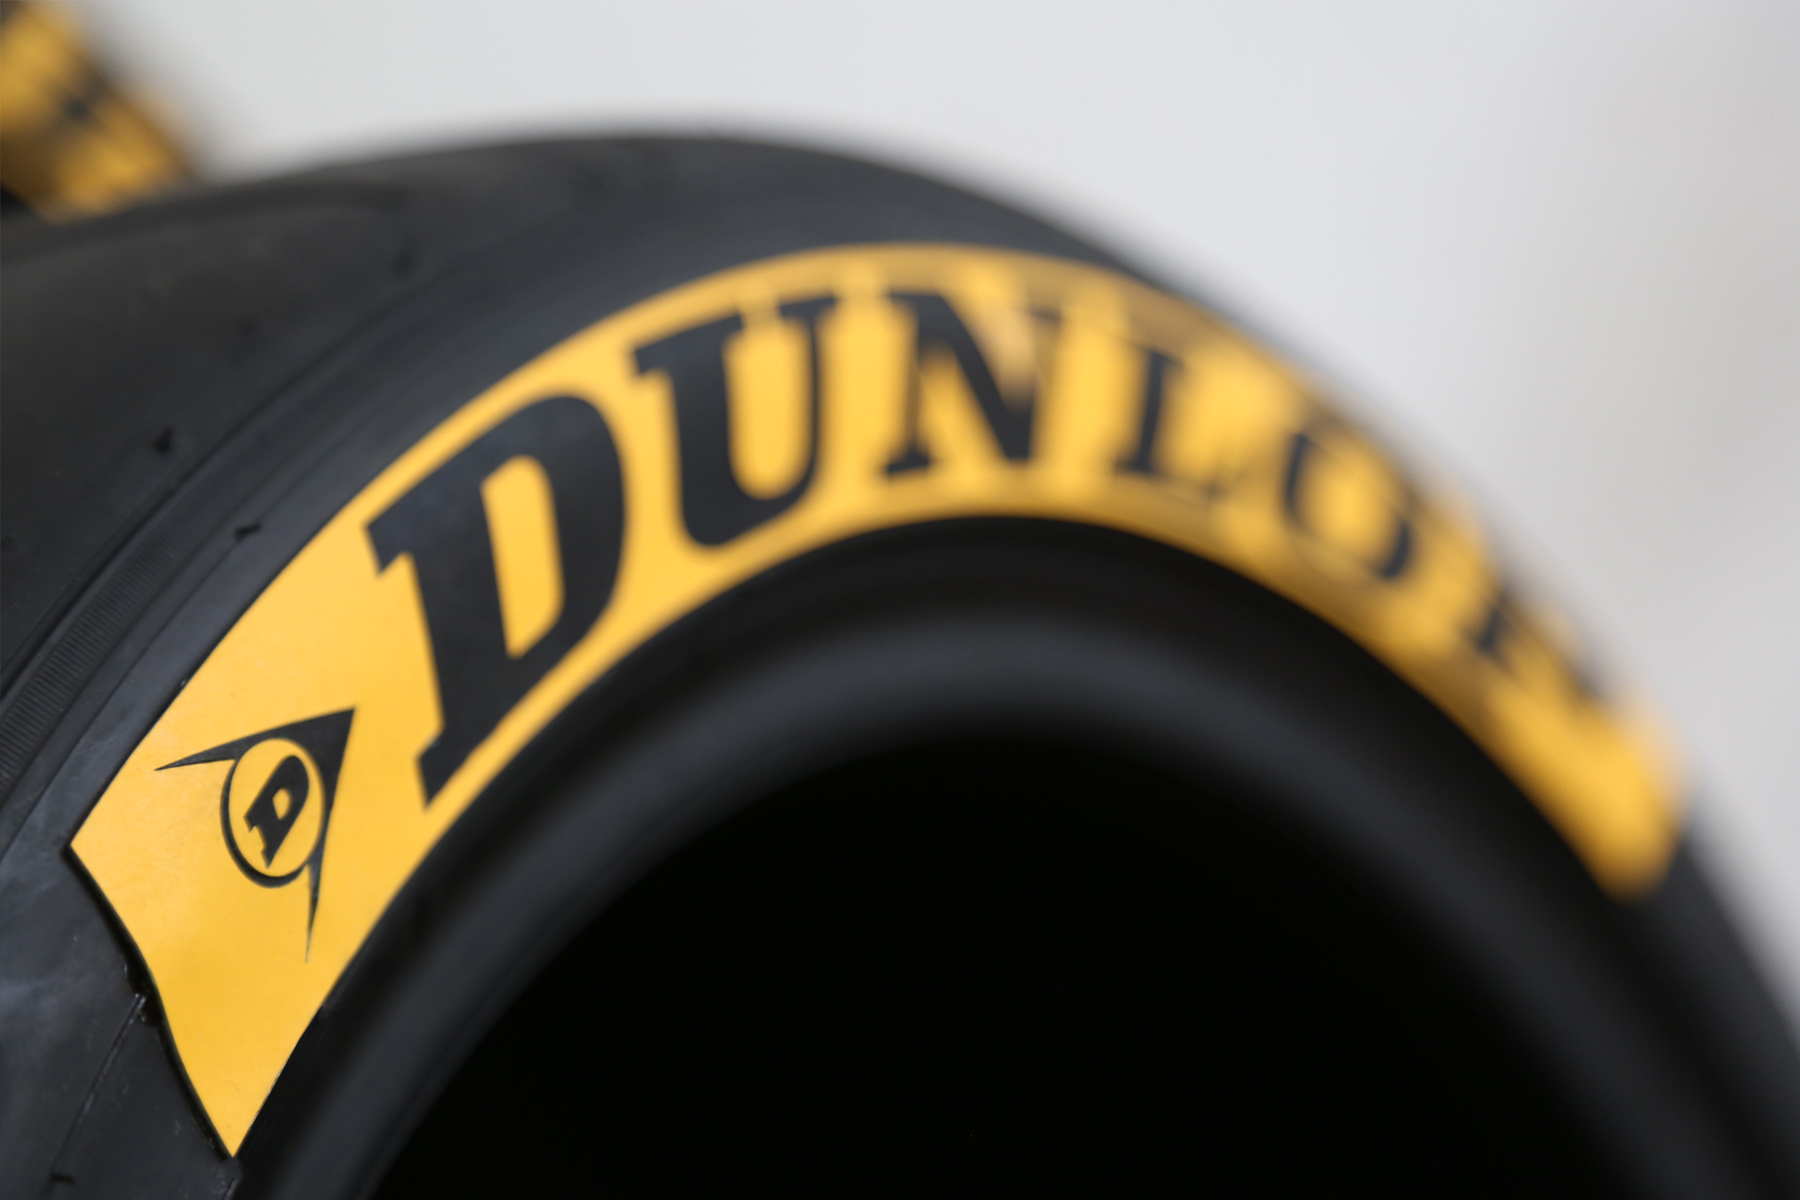 inverted style tire lettering